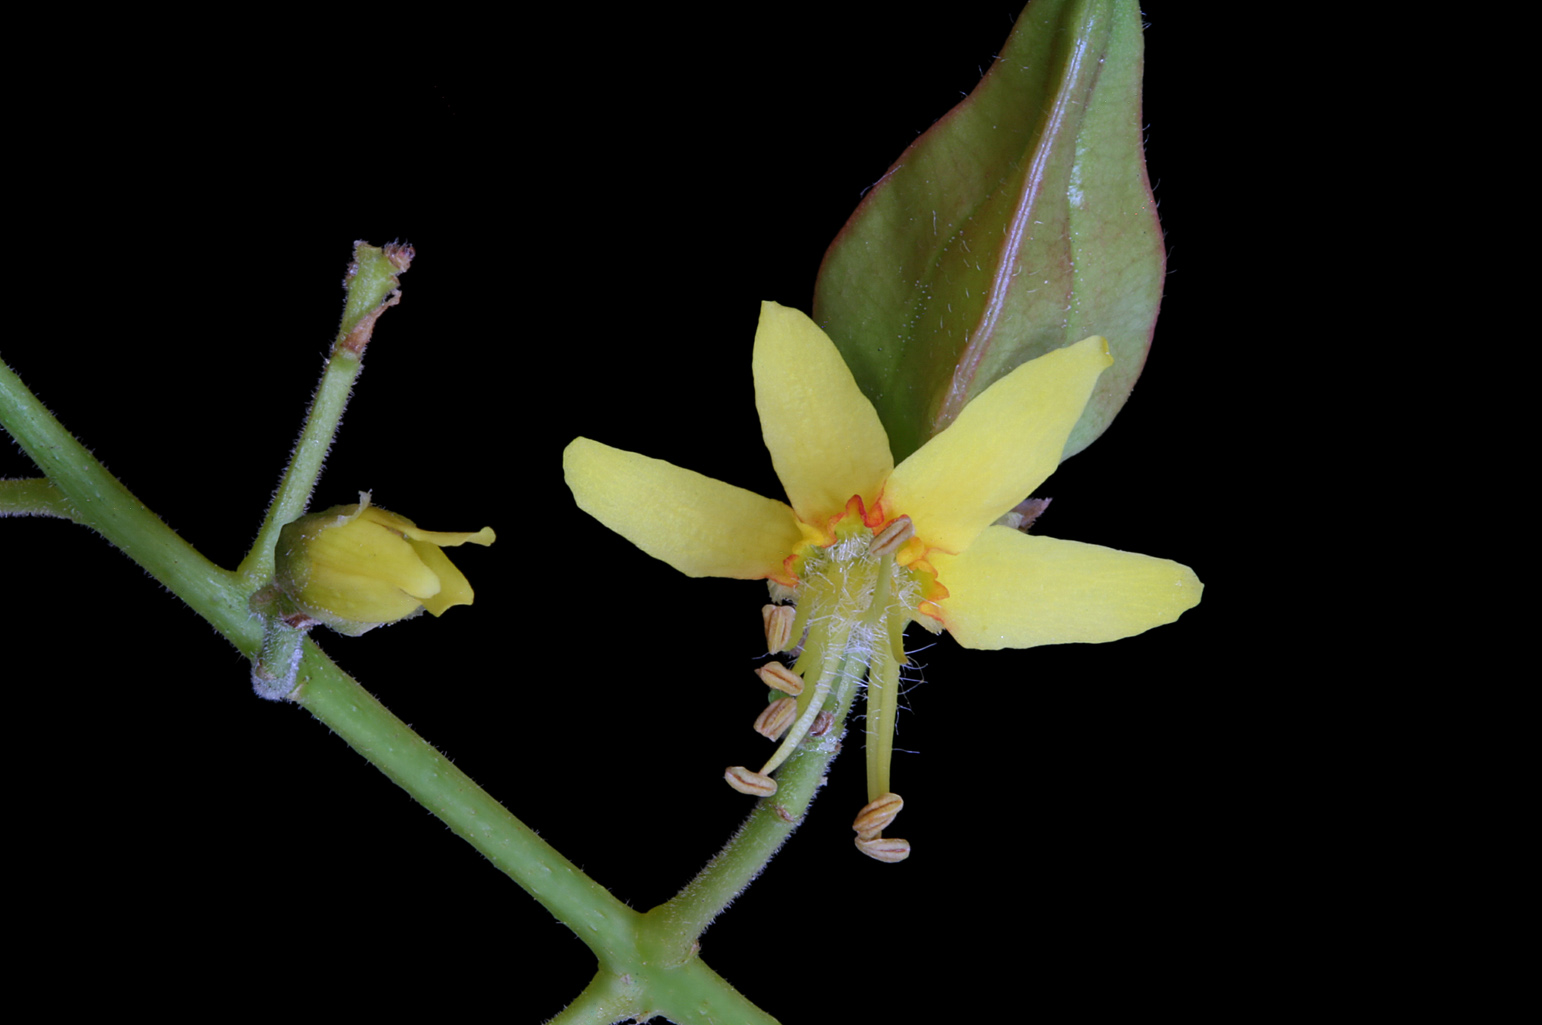 Detailed view of an inflorescence with two flower buds, a flower in anthesis and a young fruit